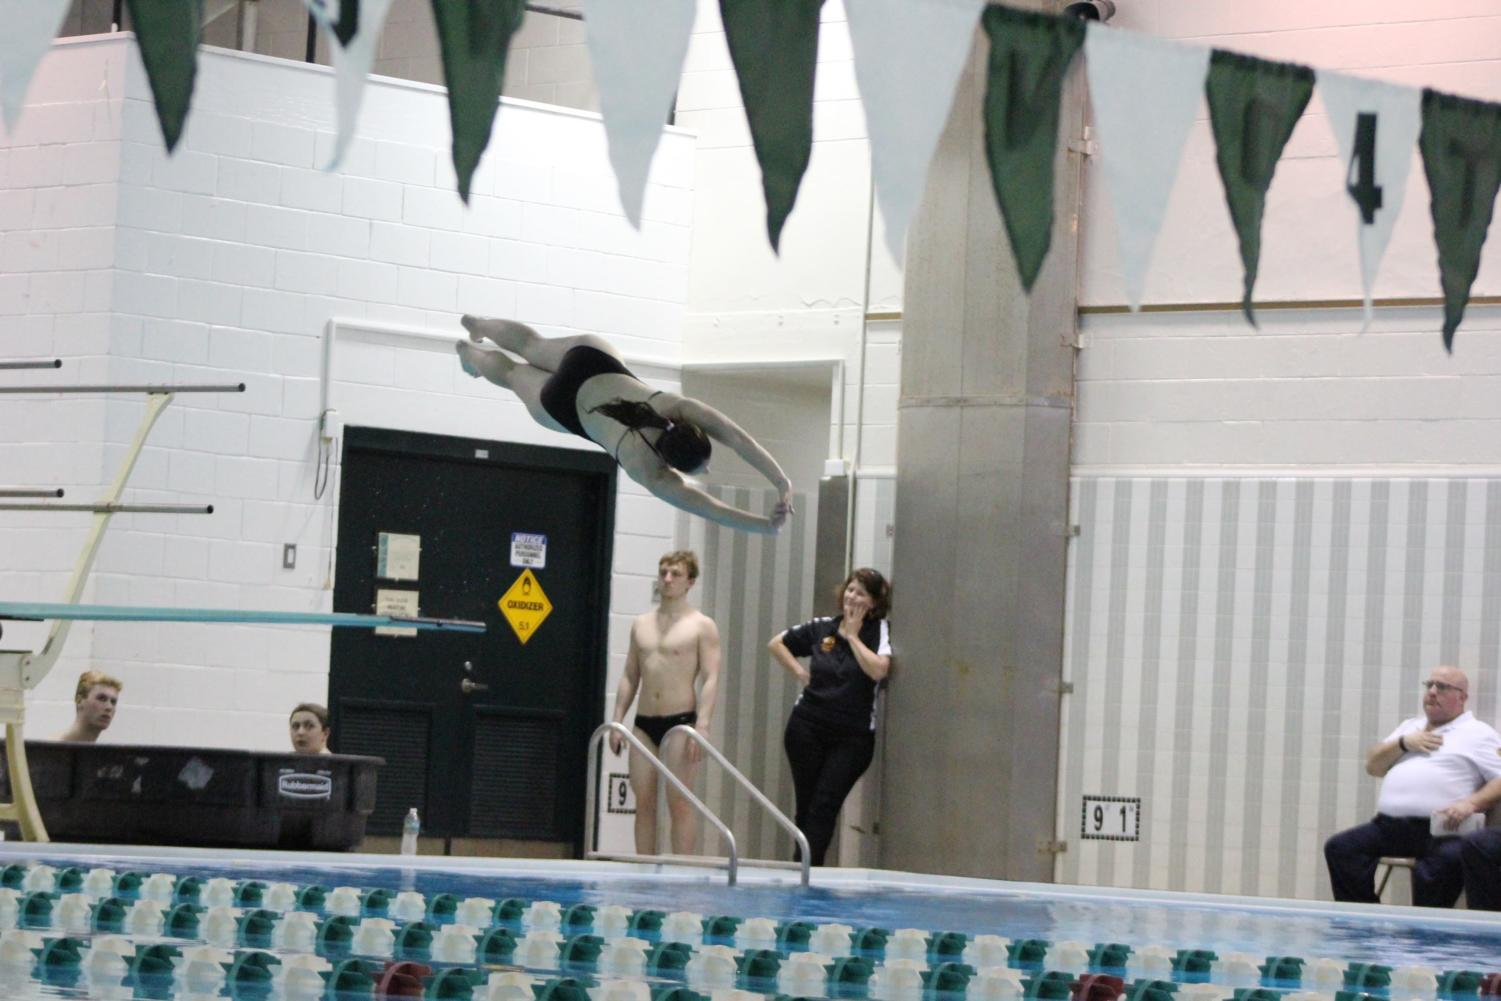 Senior+Sara+Nice+performs+her+front+dive+half+twist+at+the+end+of+the+diving+portion+of+the+meet.++%0A